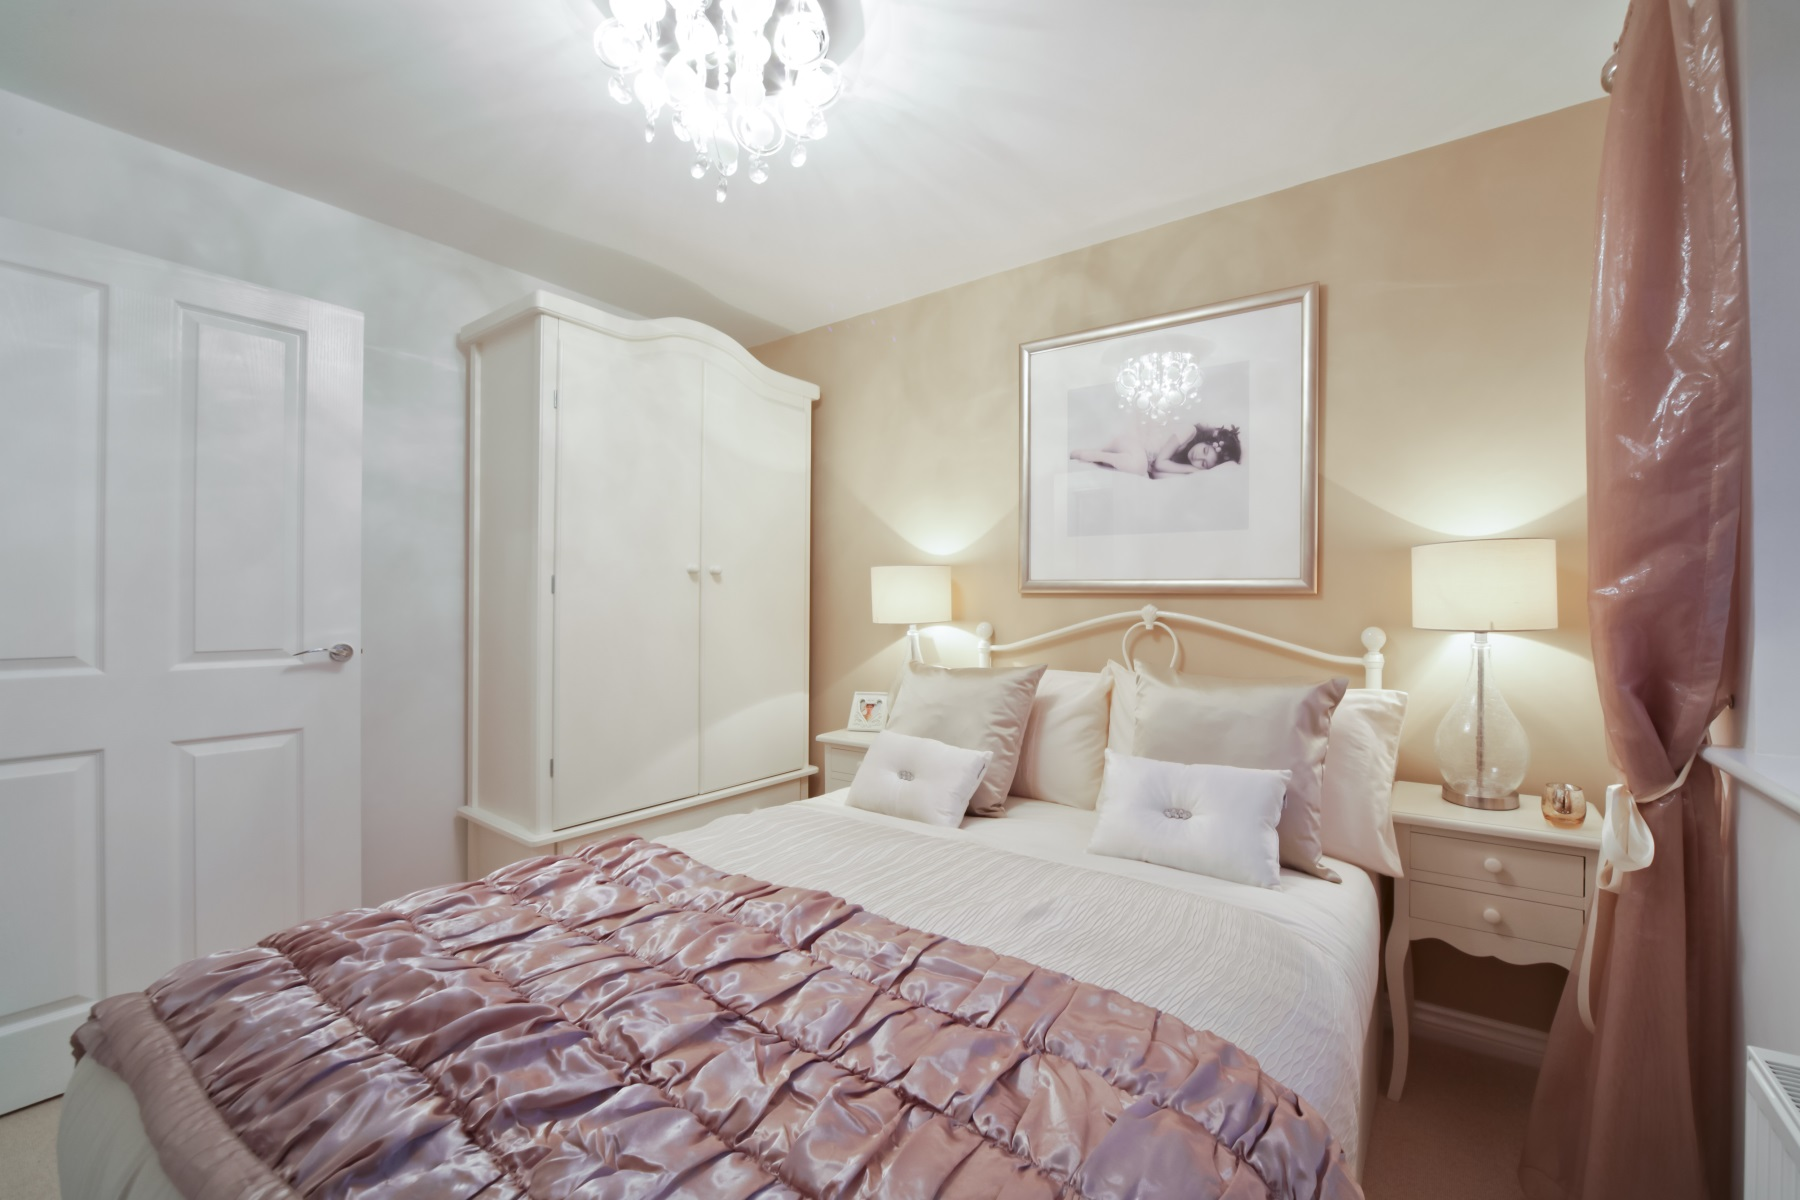 Earlsford Showhome Bedroom 2 - Sandbrook View